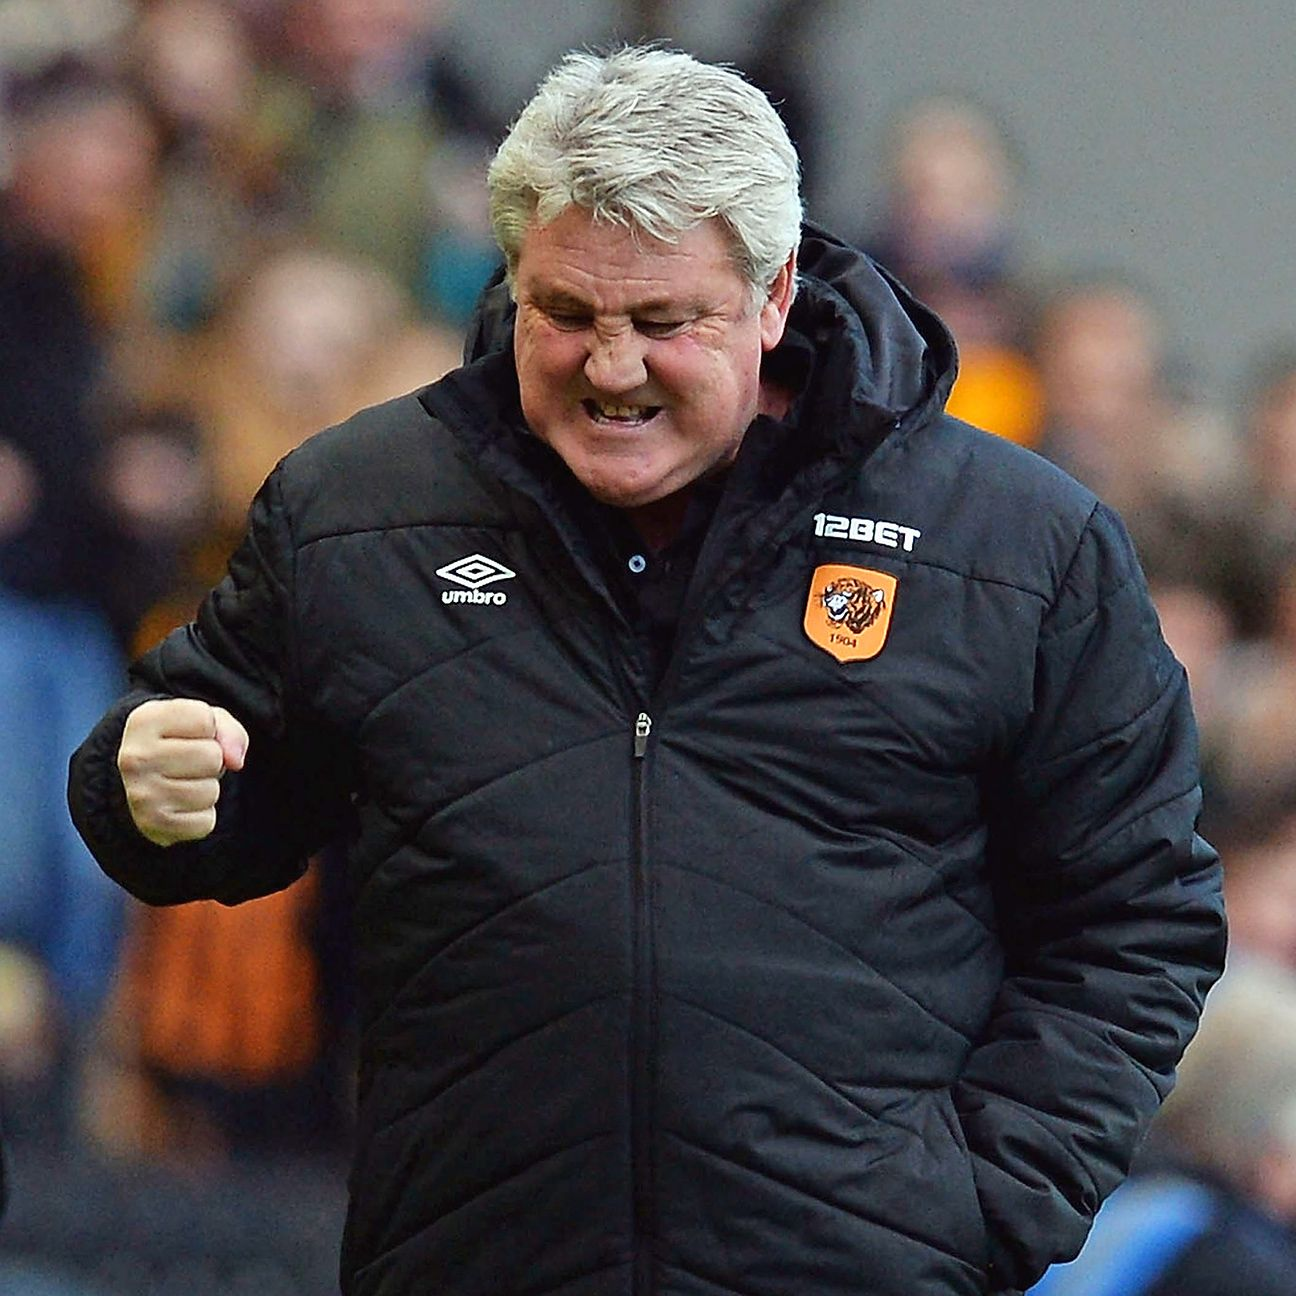 With a result at Stoke, Steve Bruce will have guided Hull through an unbeaten February.